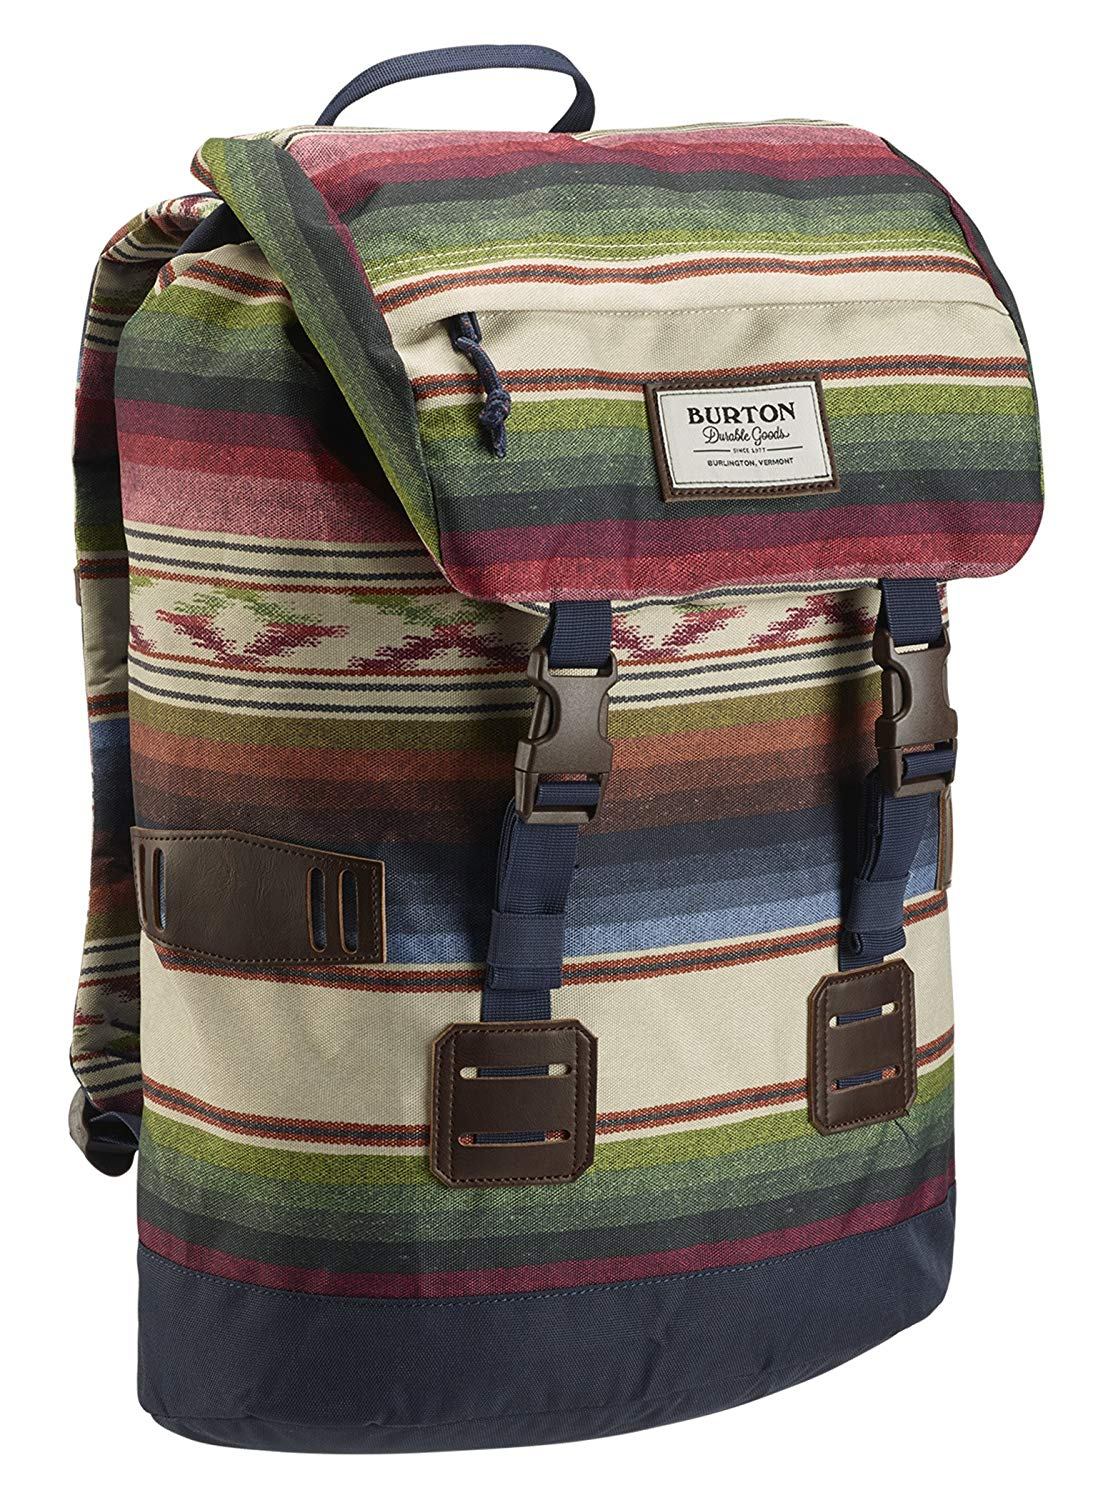 5078f5c4a3 Get Quotations · Burton Tinder Backpack